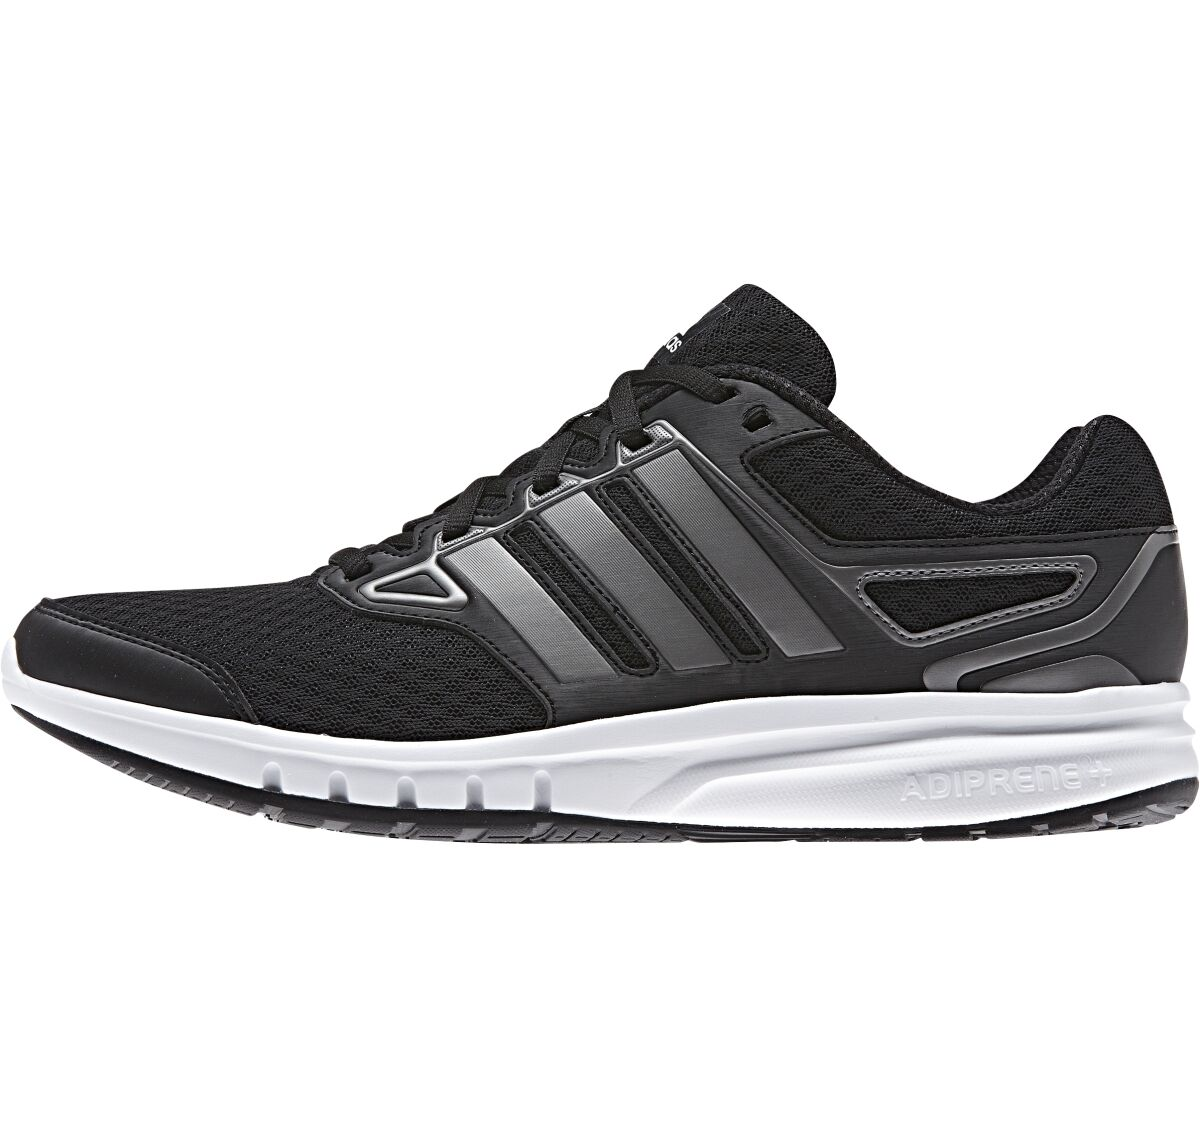 Adidas  Men's Galactic Elite Running shoes B35857 Sizes  14 & 15  high-quality merchandise and convenient, honest service